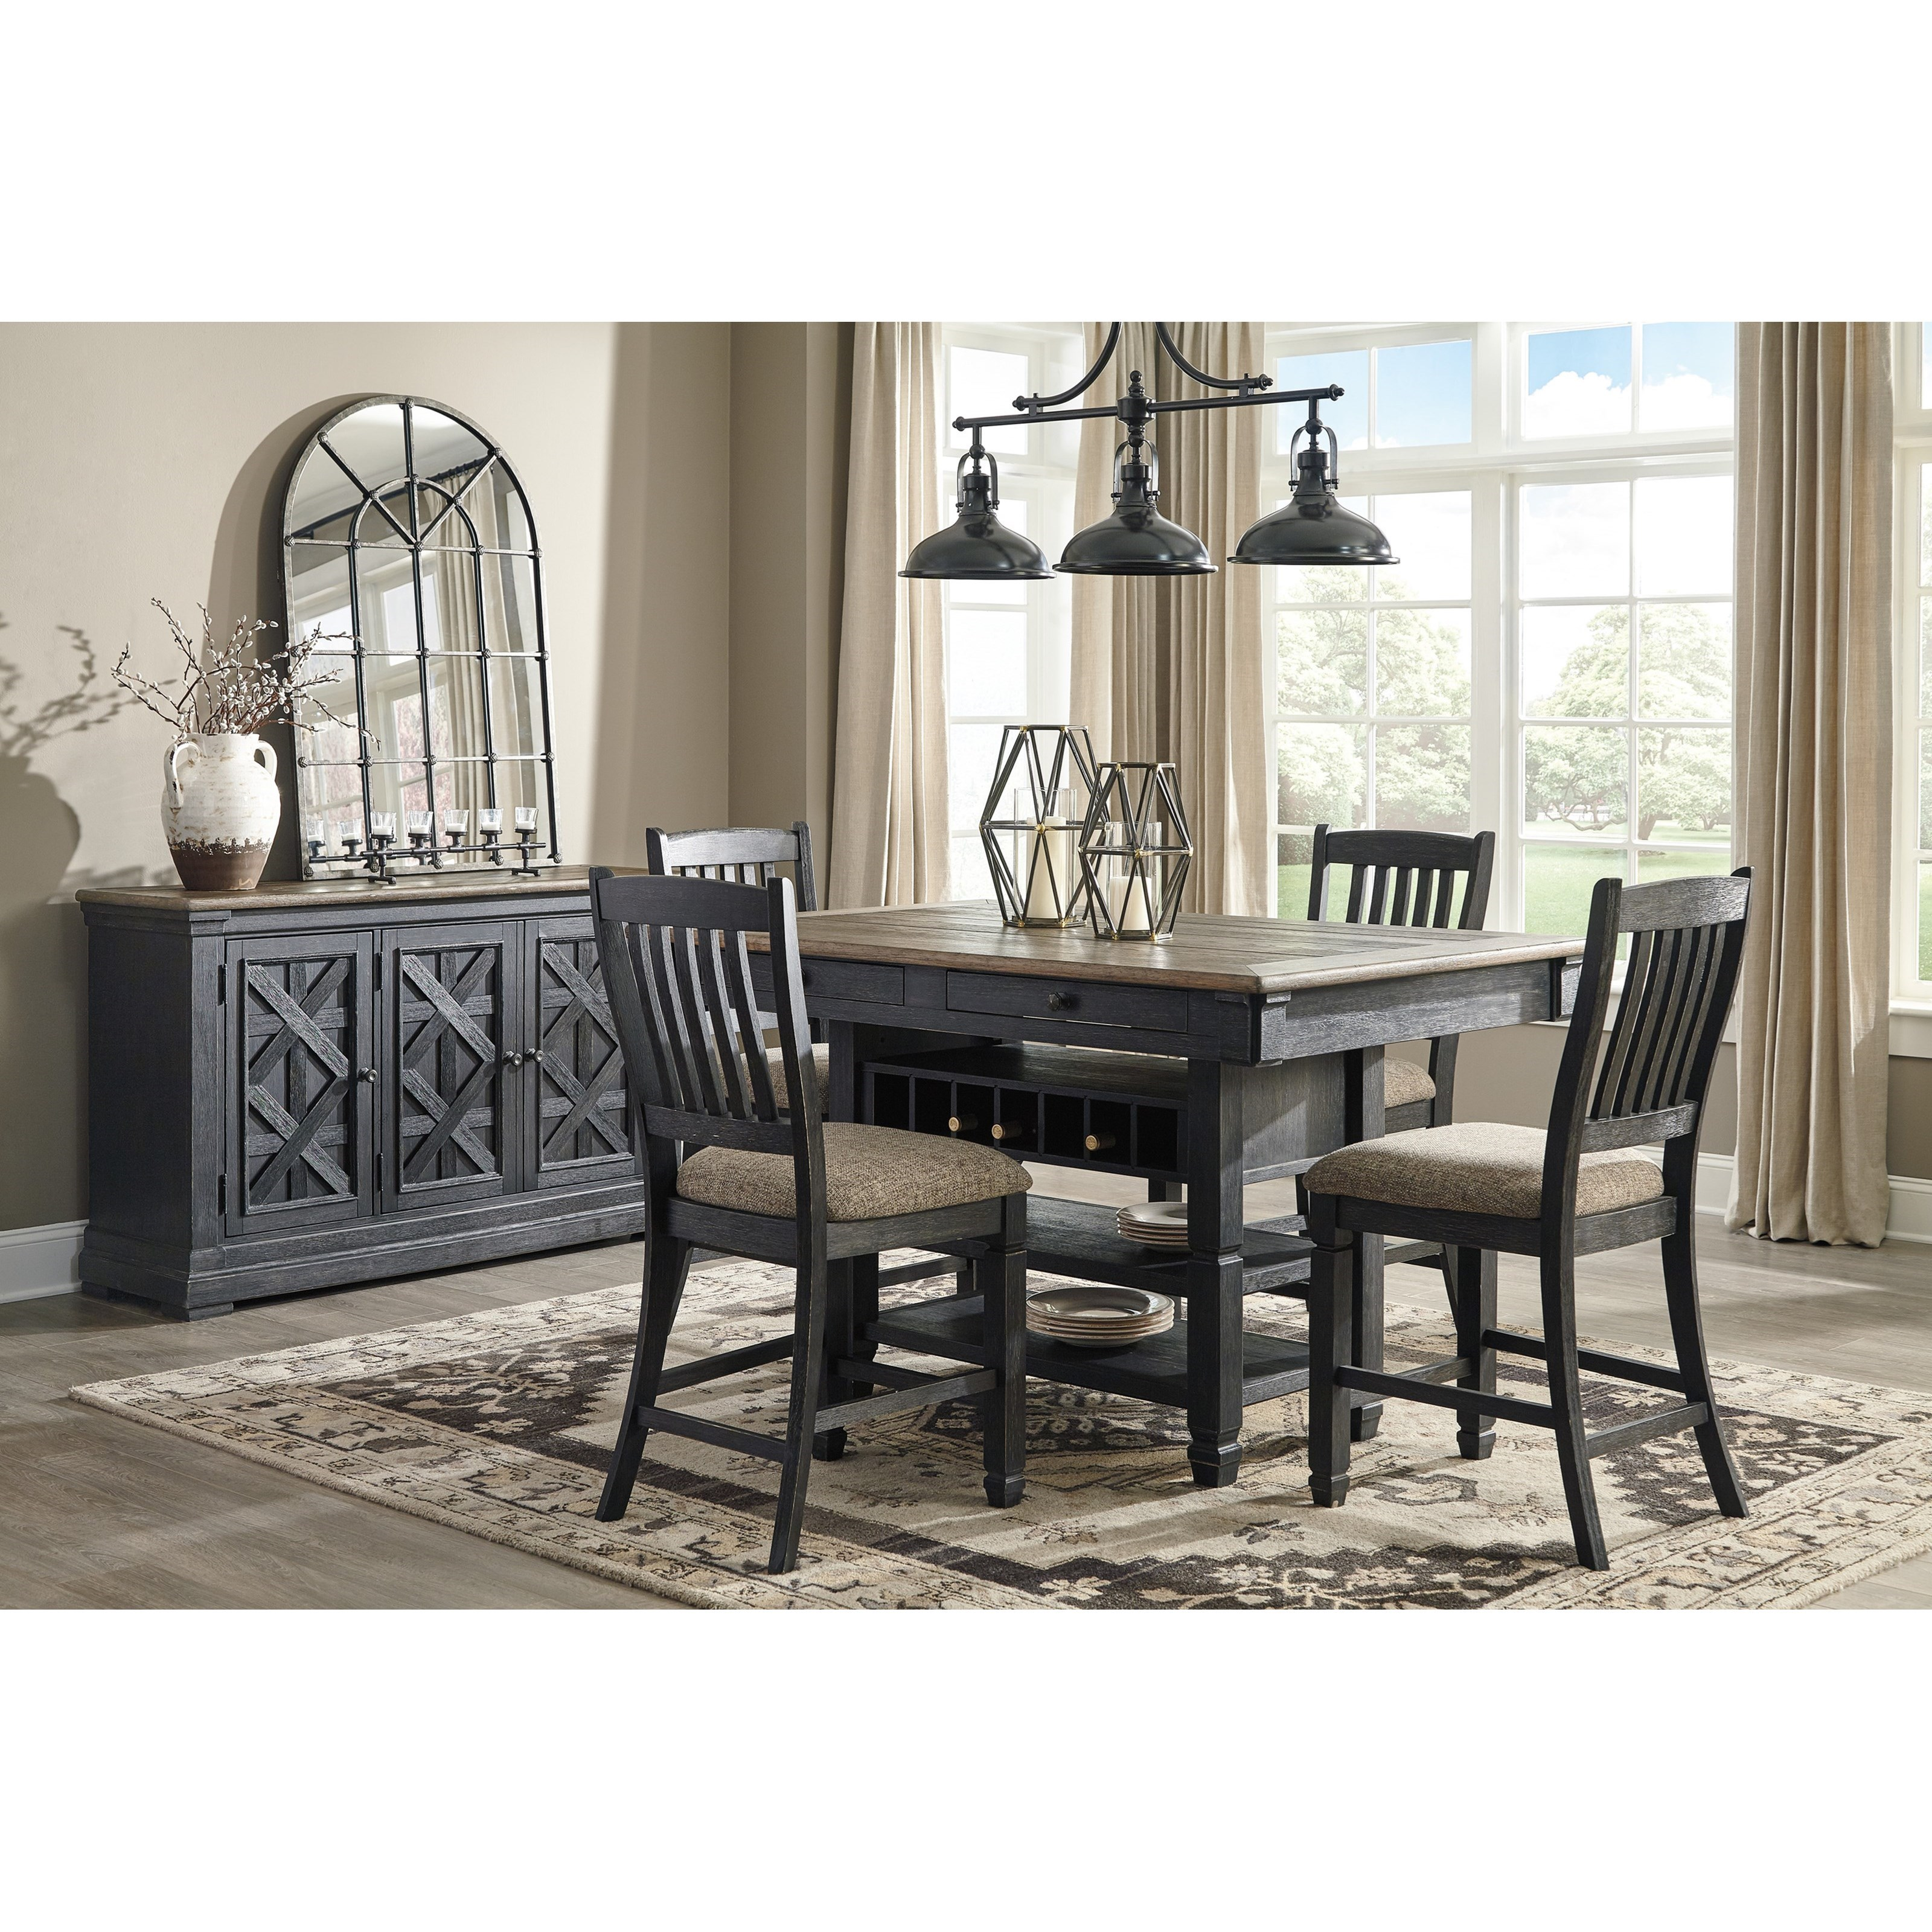 Tyler Creek Casual Dining Room Group by Signature Design by Ashley at Northeast Factory Direct